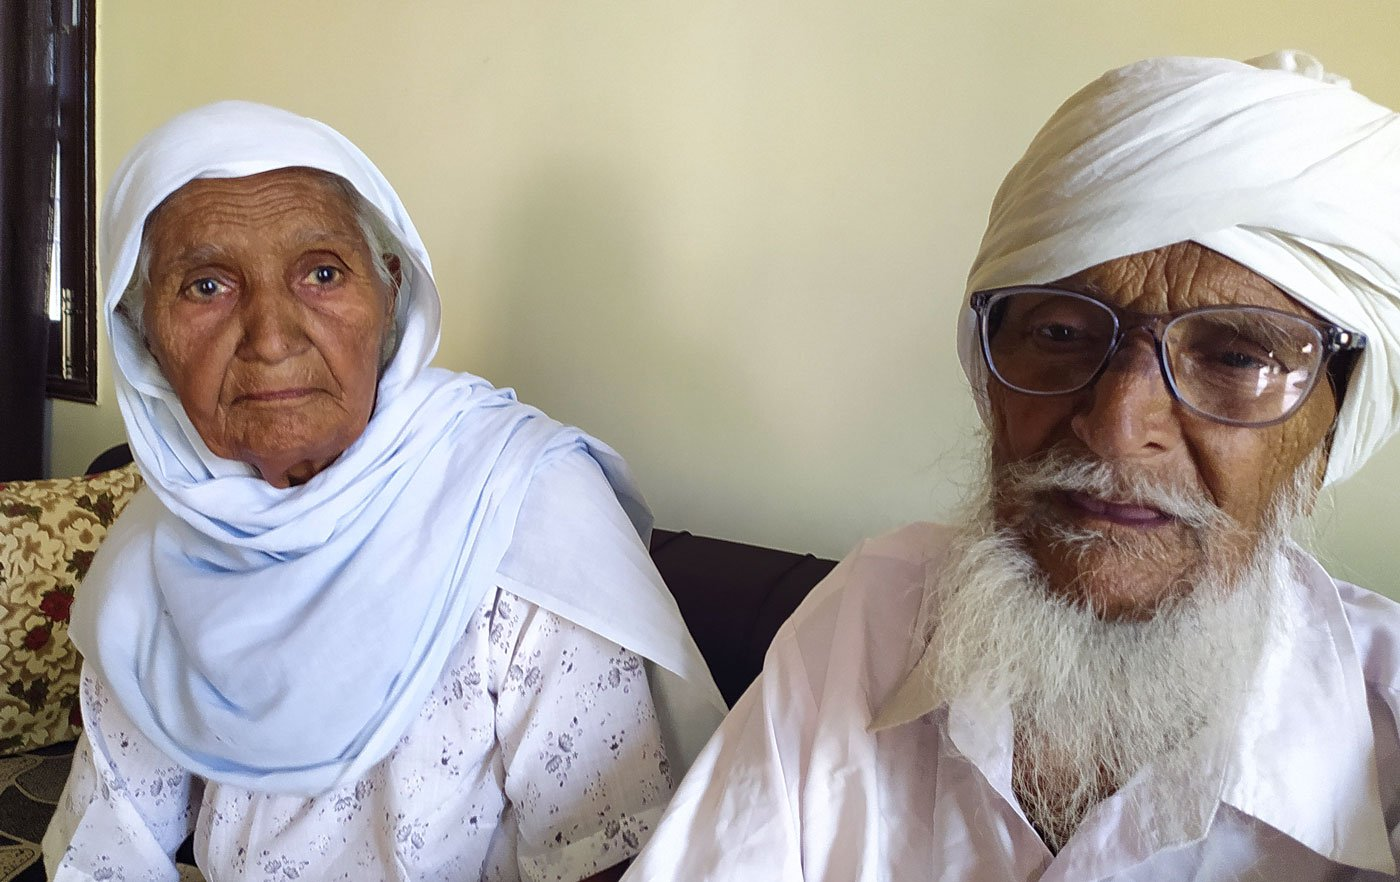 Bhagat Singh with his wife Gurdev Kaur at their home in Ramgarh. Right: He has sold off his 12-bore gun as, he says, now even 'a child could snatch it from my hands'